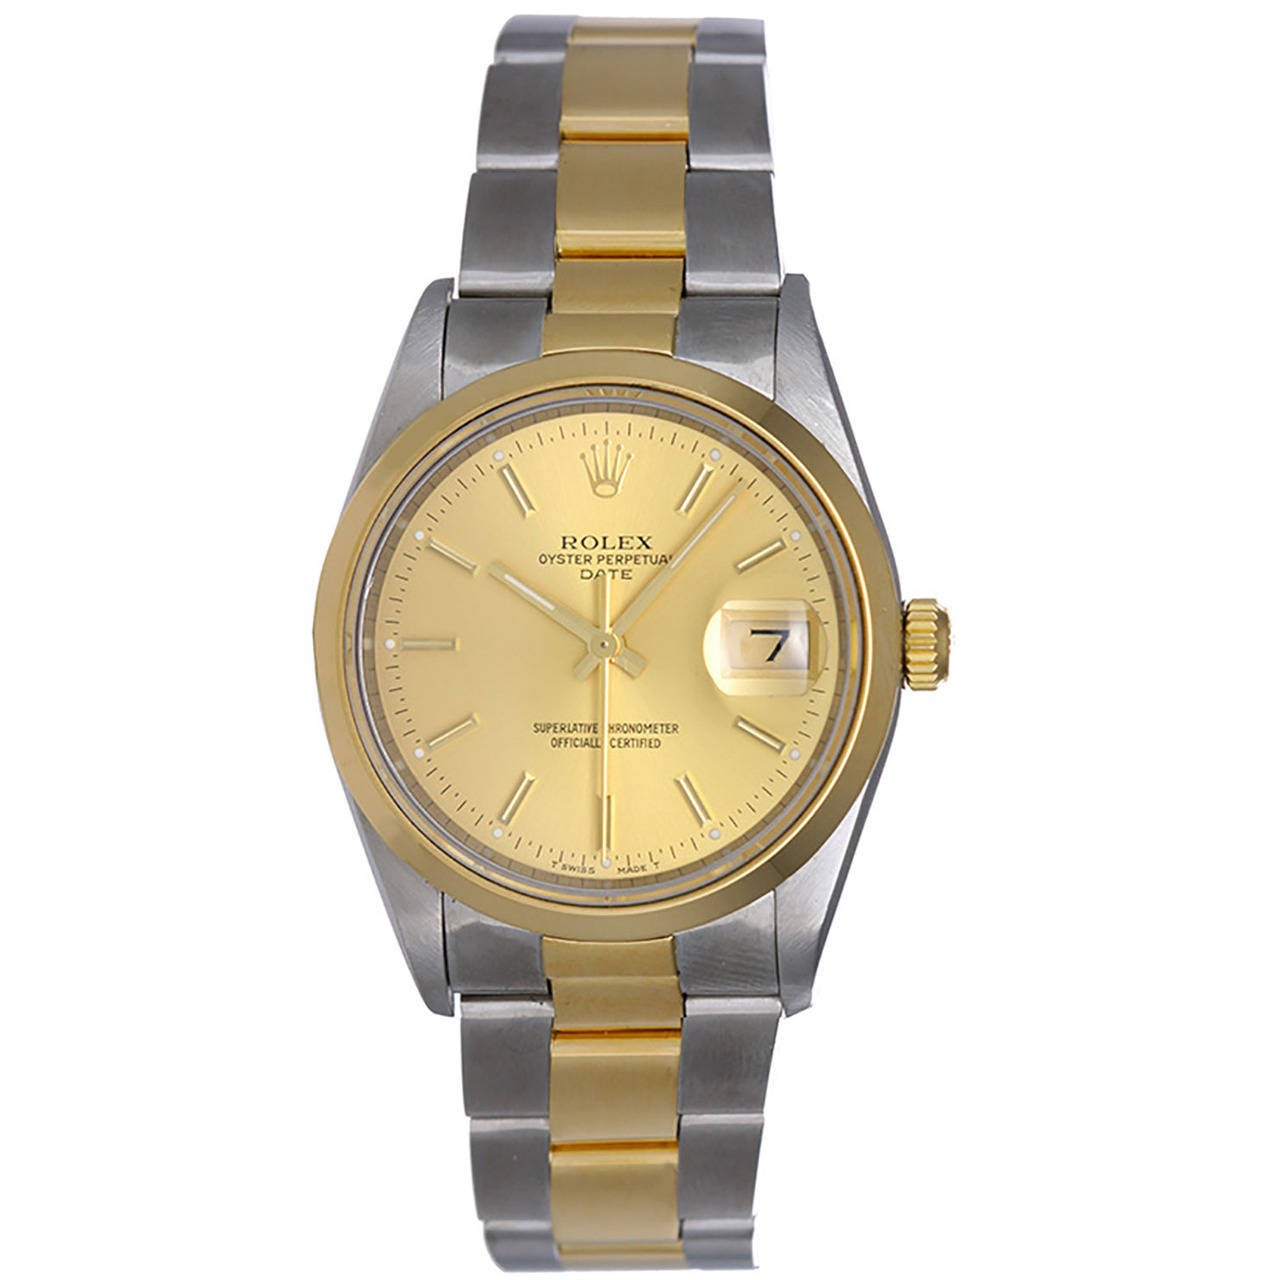 Rolex Yellow Gold Stainless Steel Champagne Dial Automatic Wristwatch Ref 15203